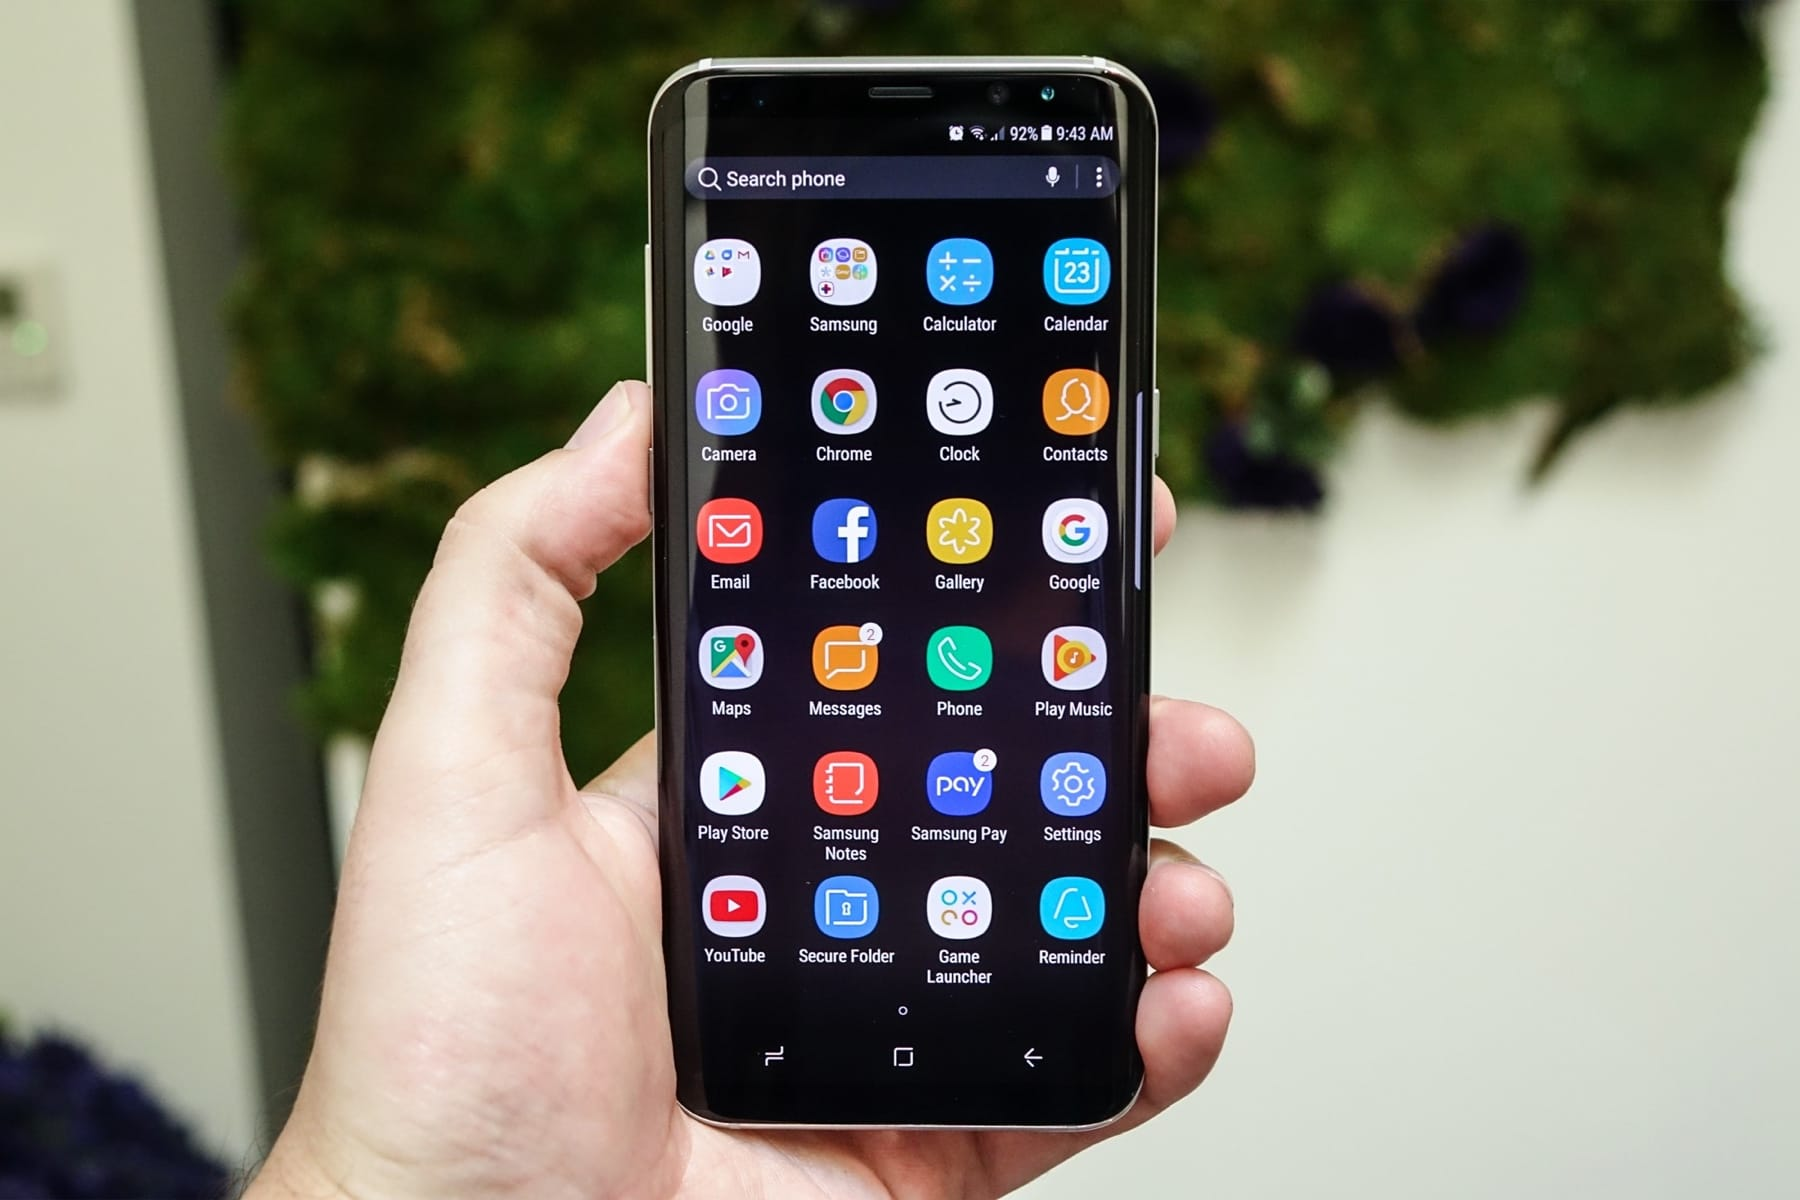 Samsung Galaxy S8 Galaxy S8+ Photo review 14